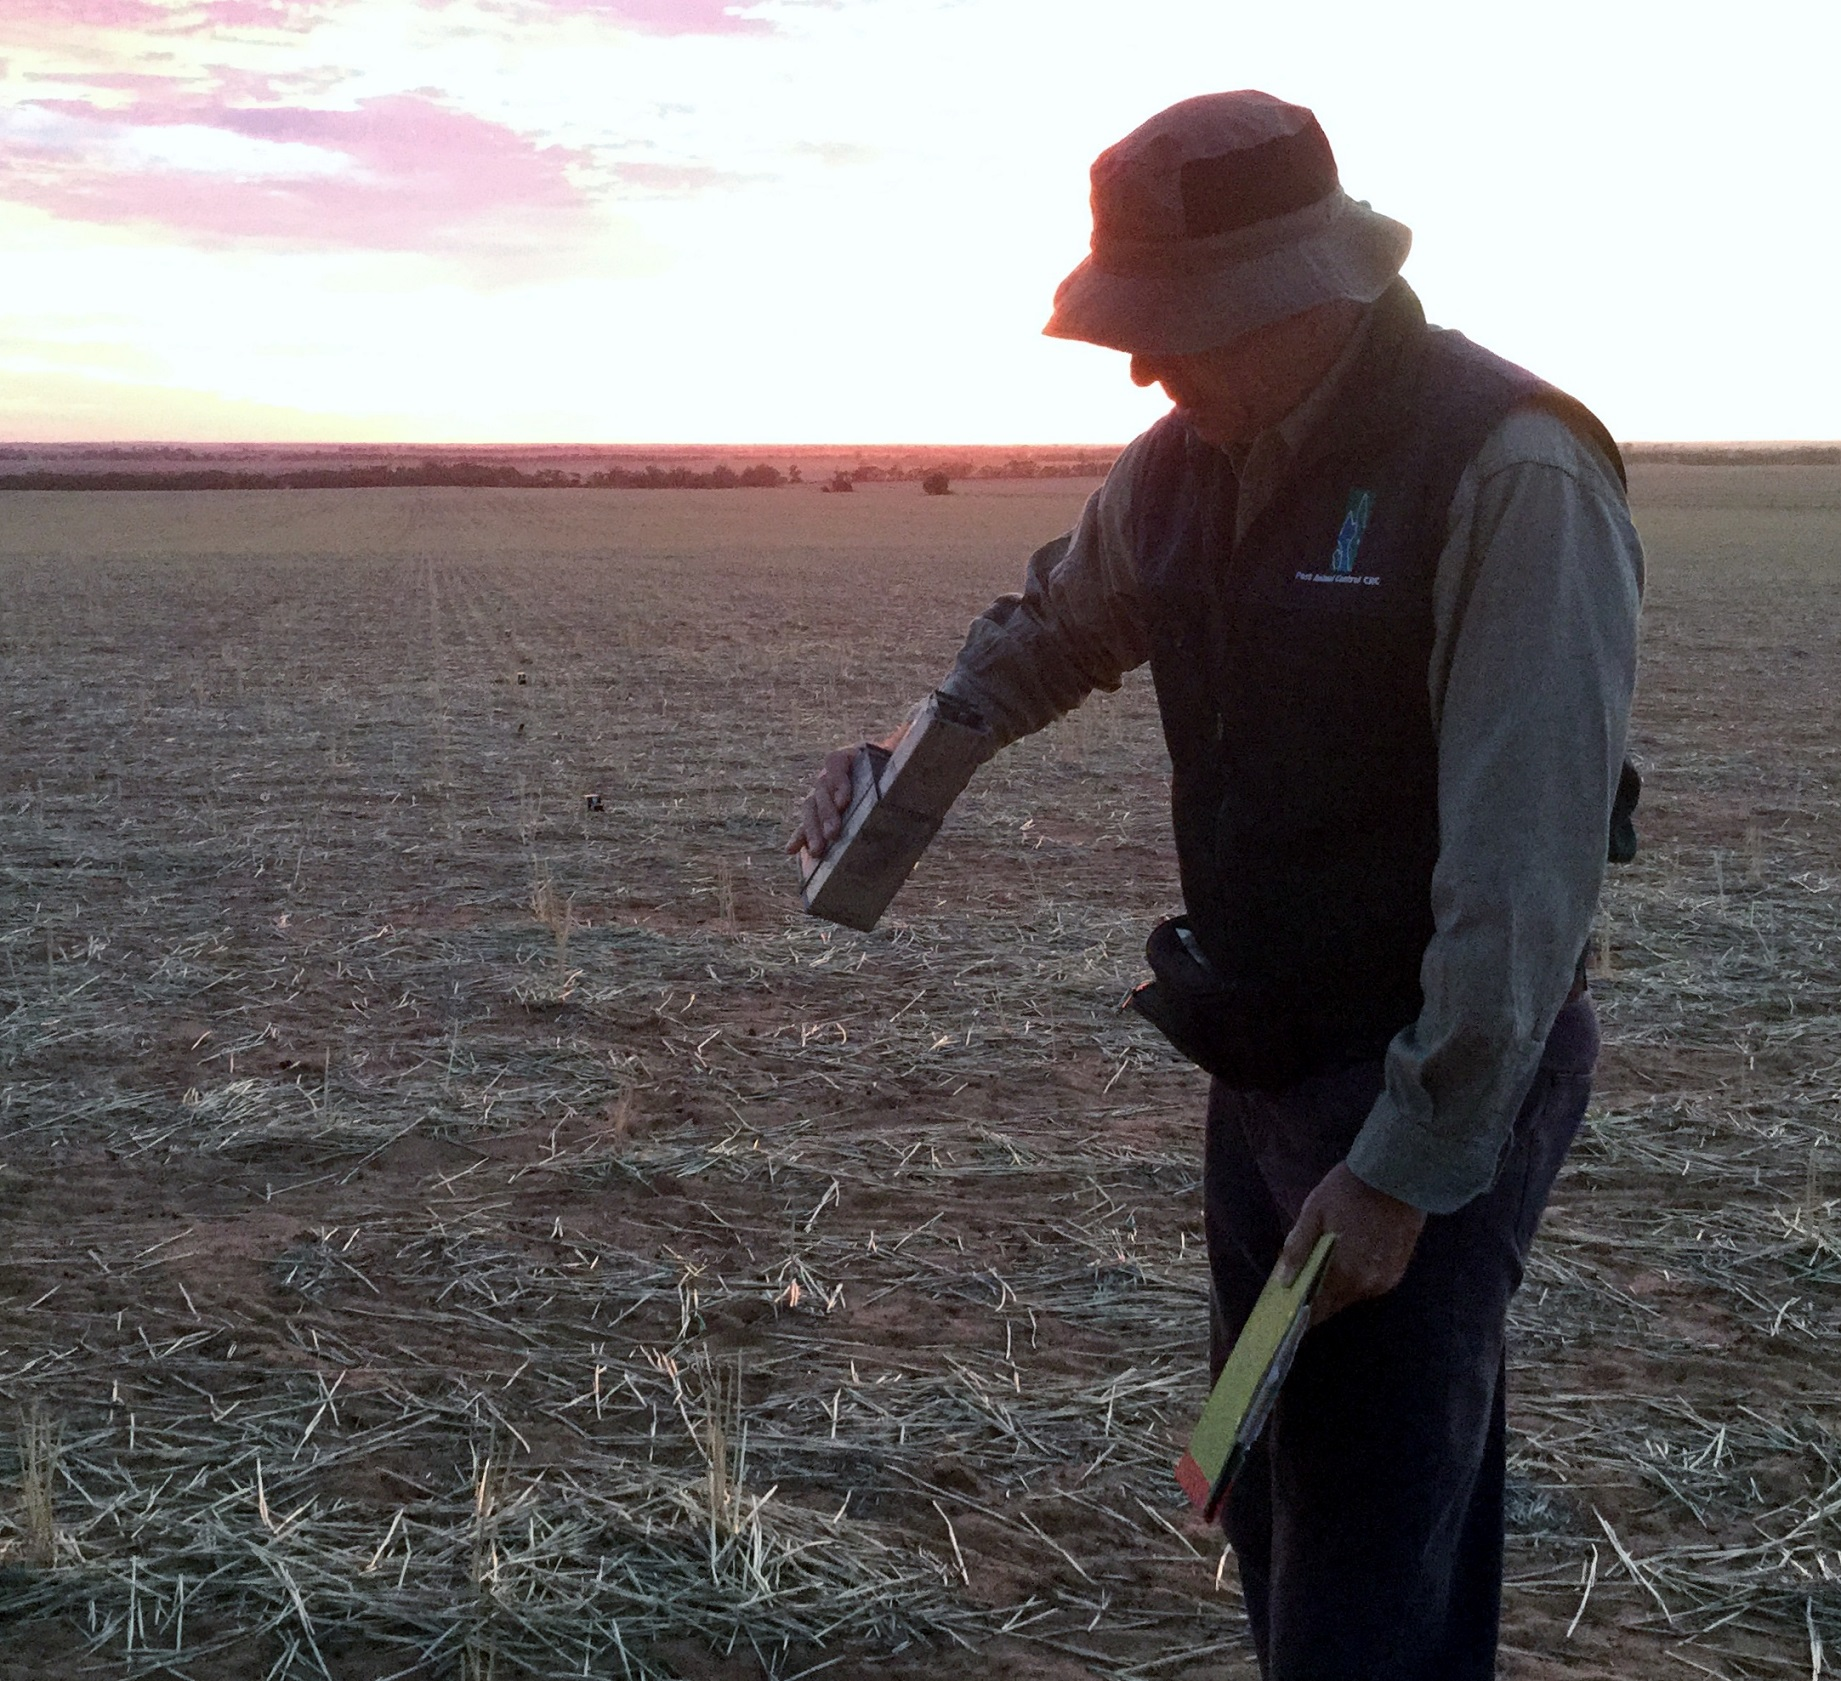 Checking a mouse trap, with the sun on the horizon in the background